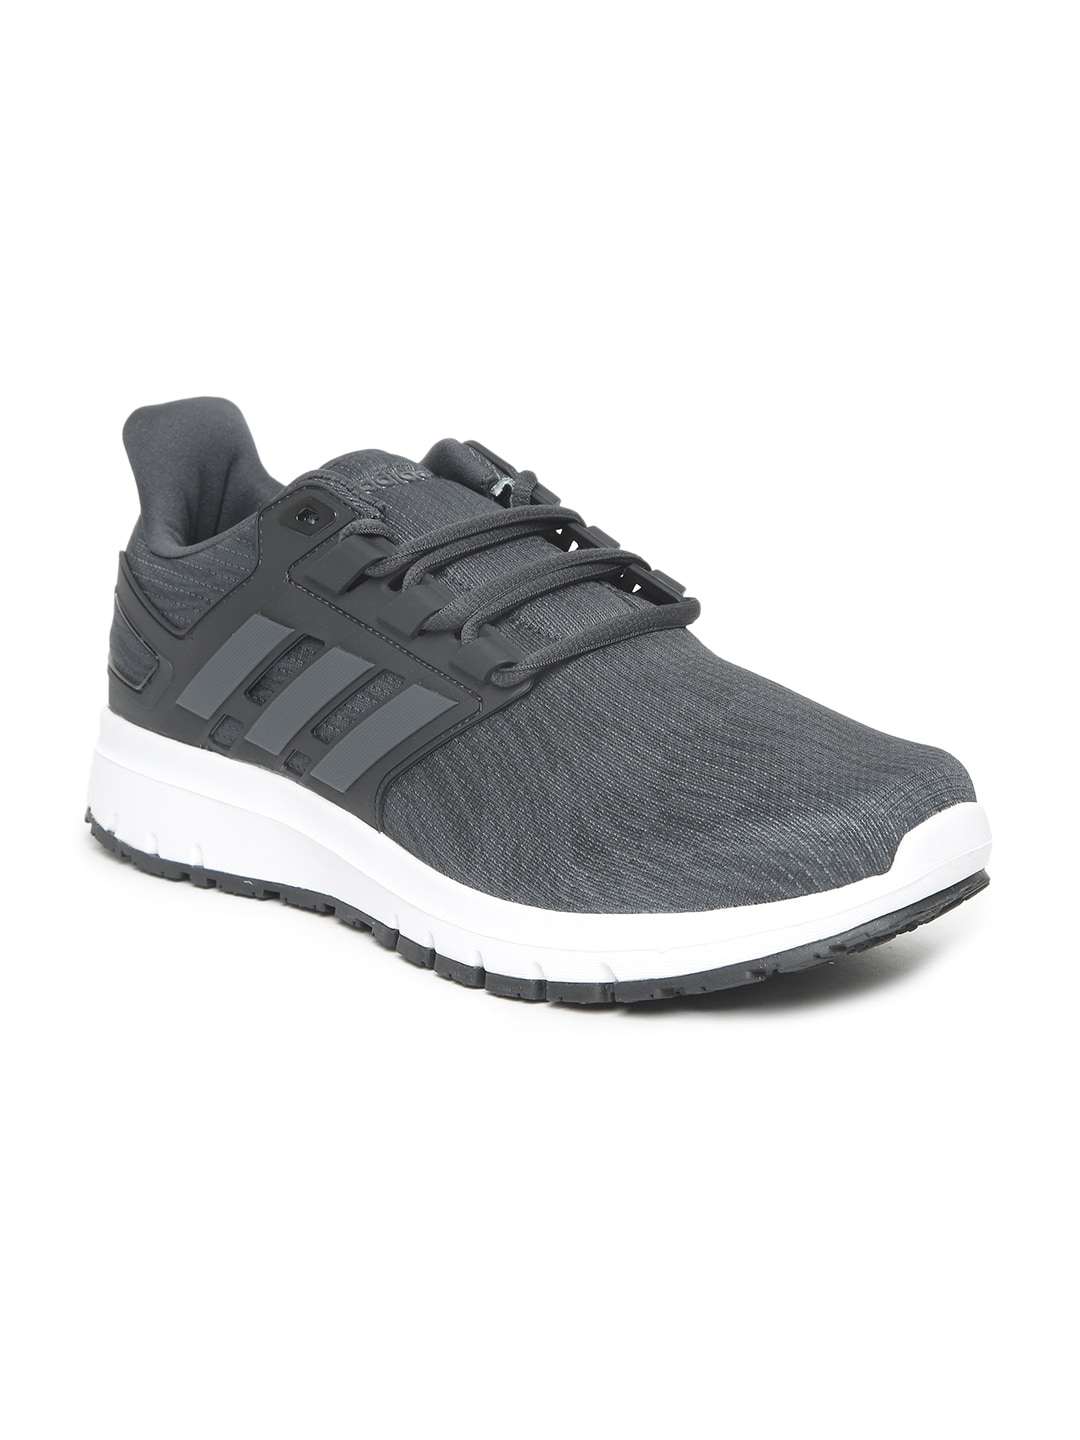 b75679580cbb47 Adidas Shoe Tights Watches - Buy Adidas Shoe Tights Watches online in India